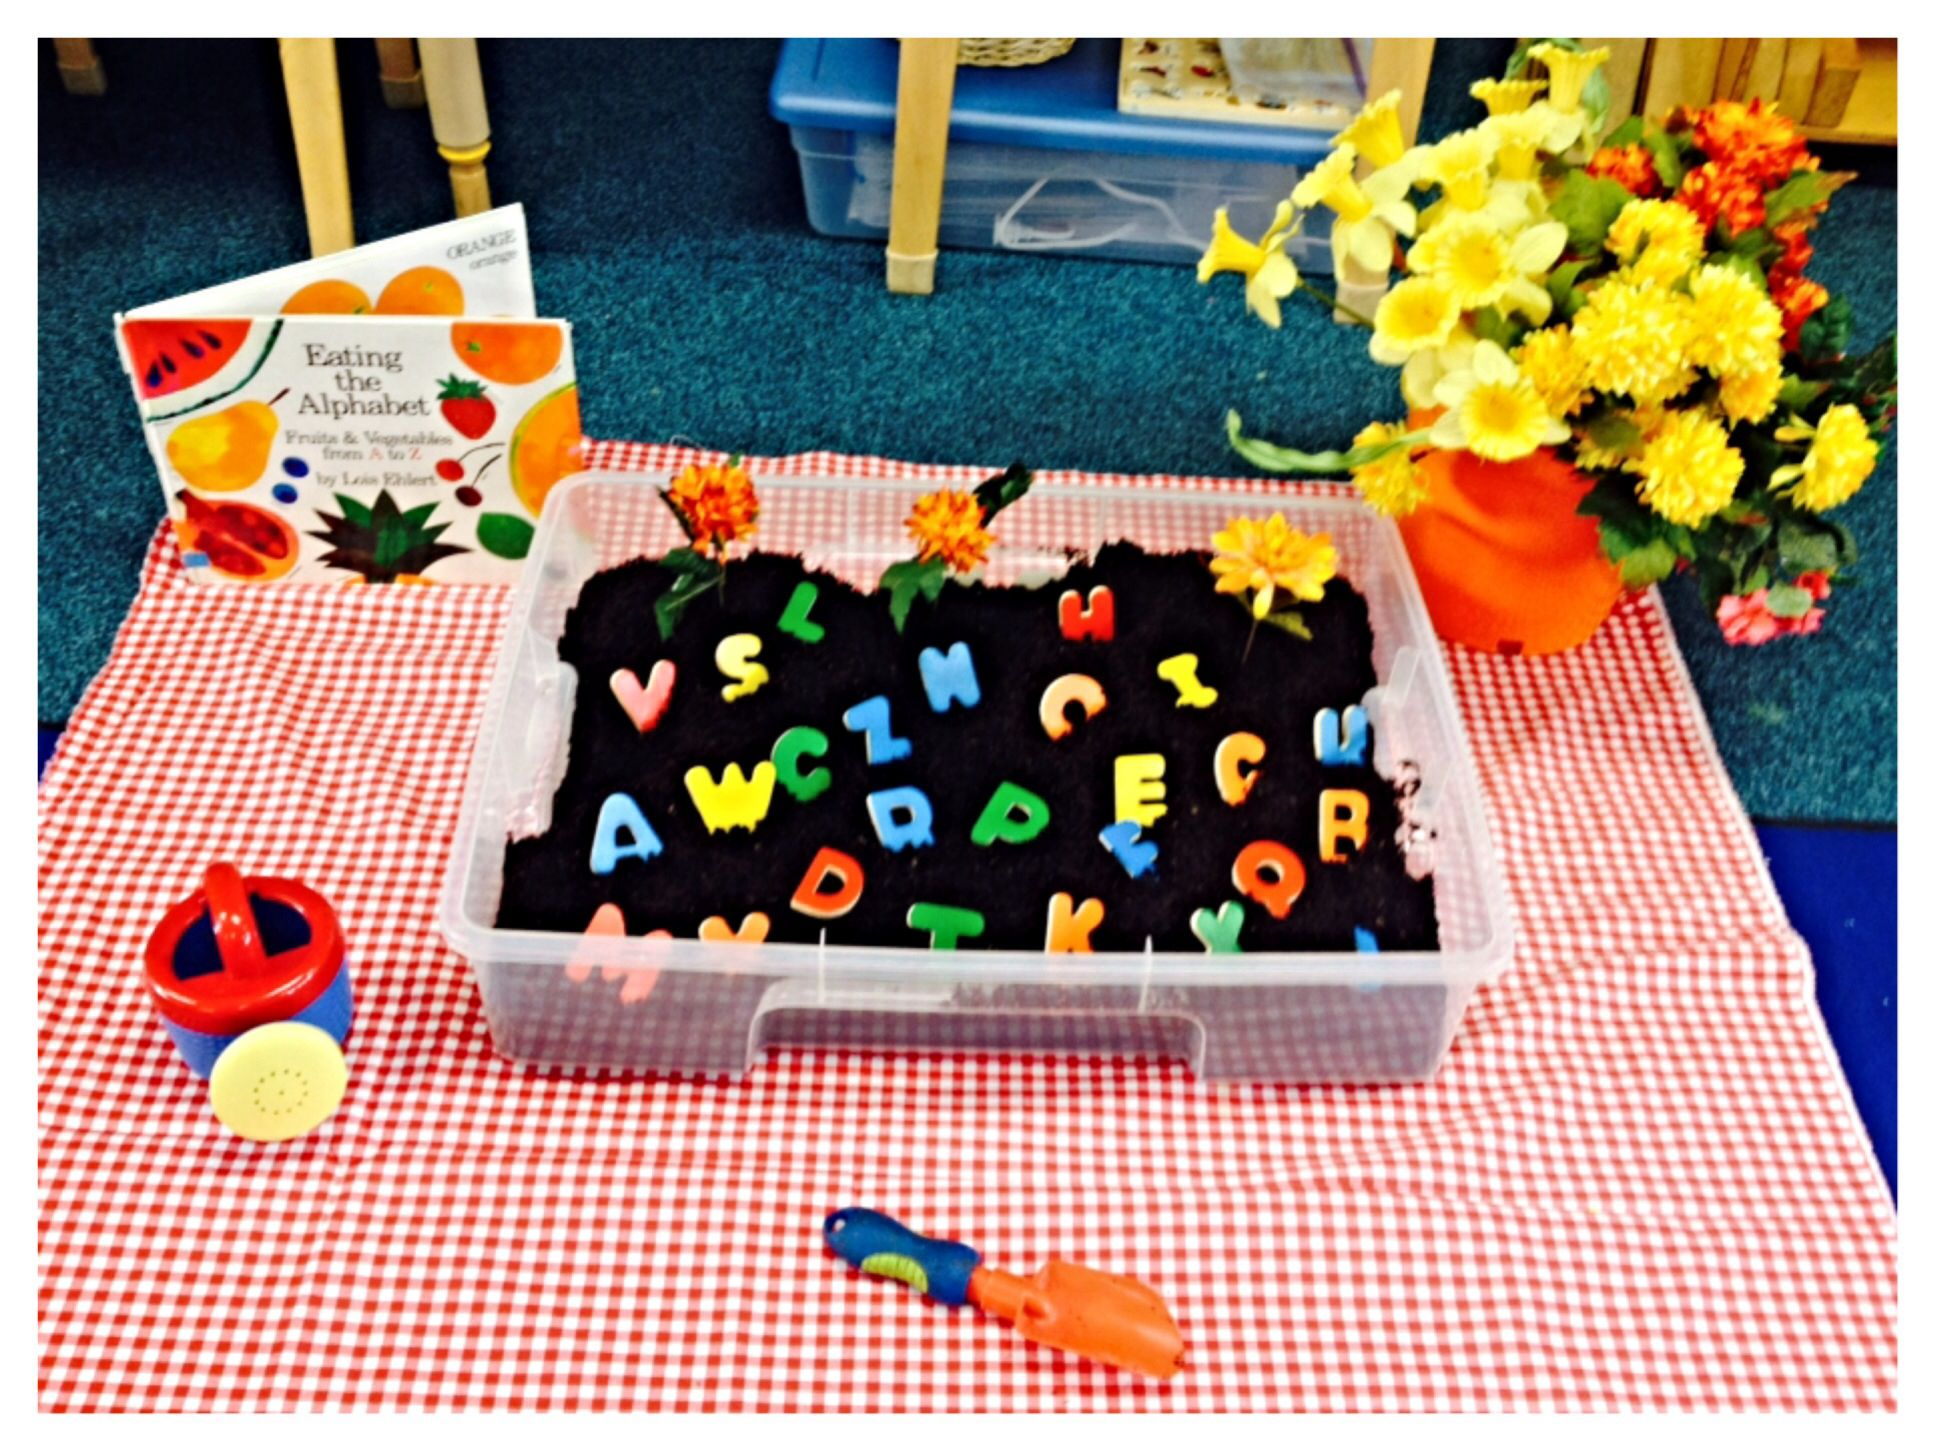 Preschool Garden Theme Literacy Lesson Sing Abc Song Children Take Turns Using Shovel To Dig